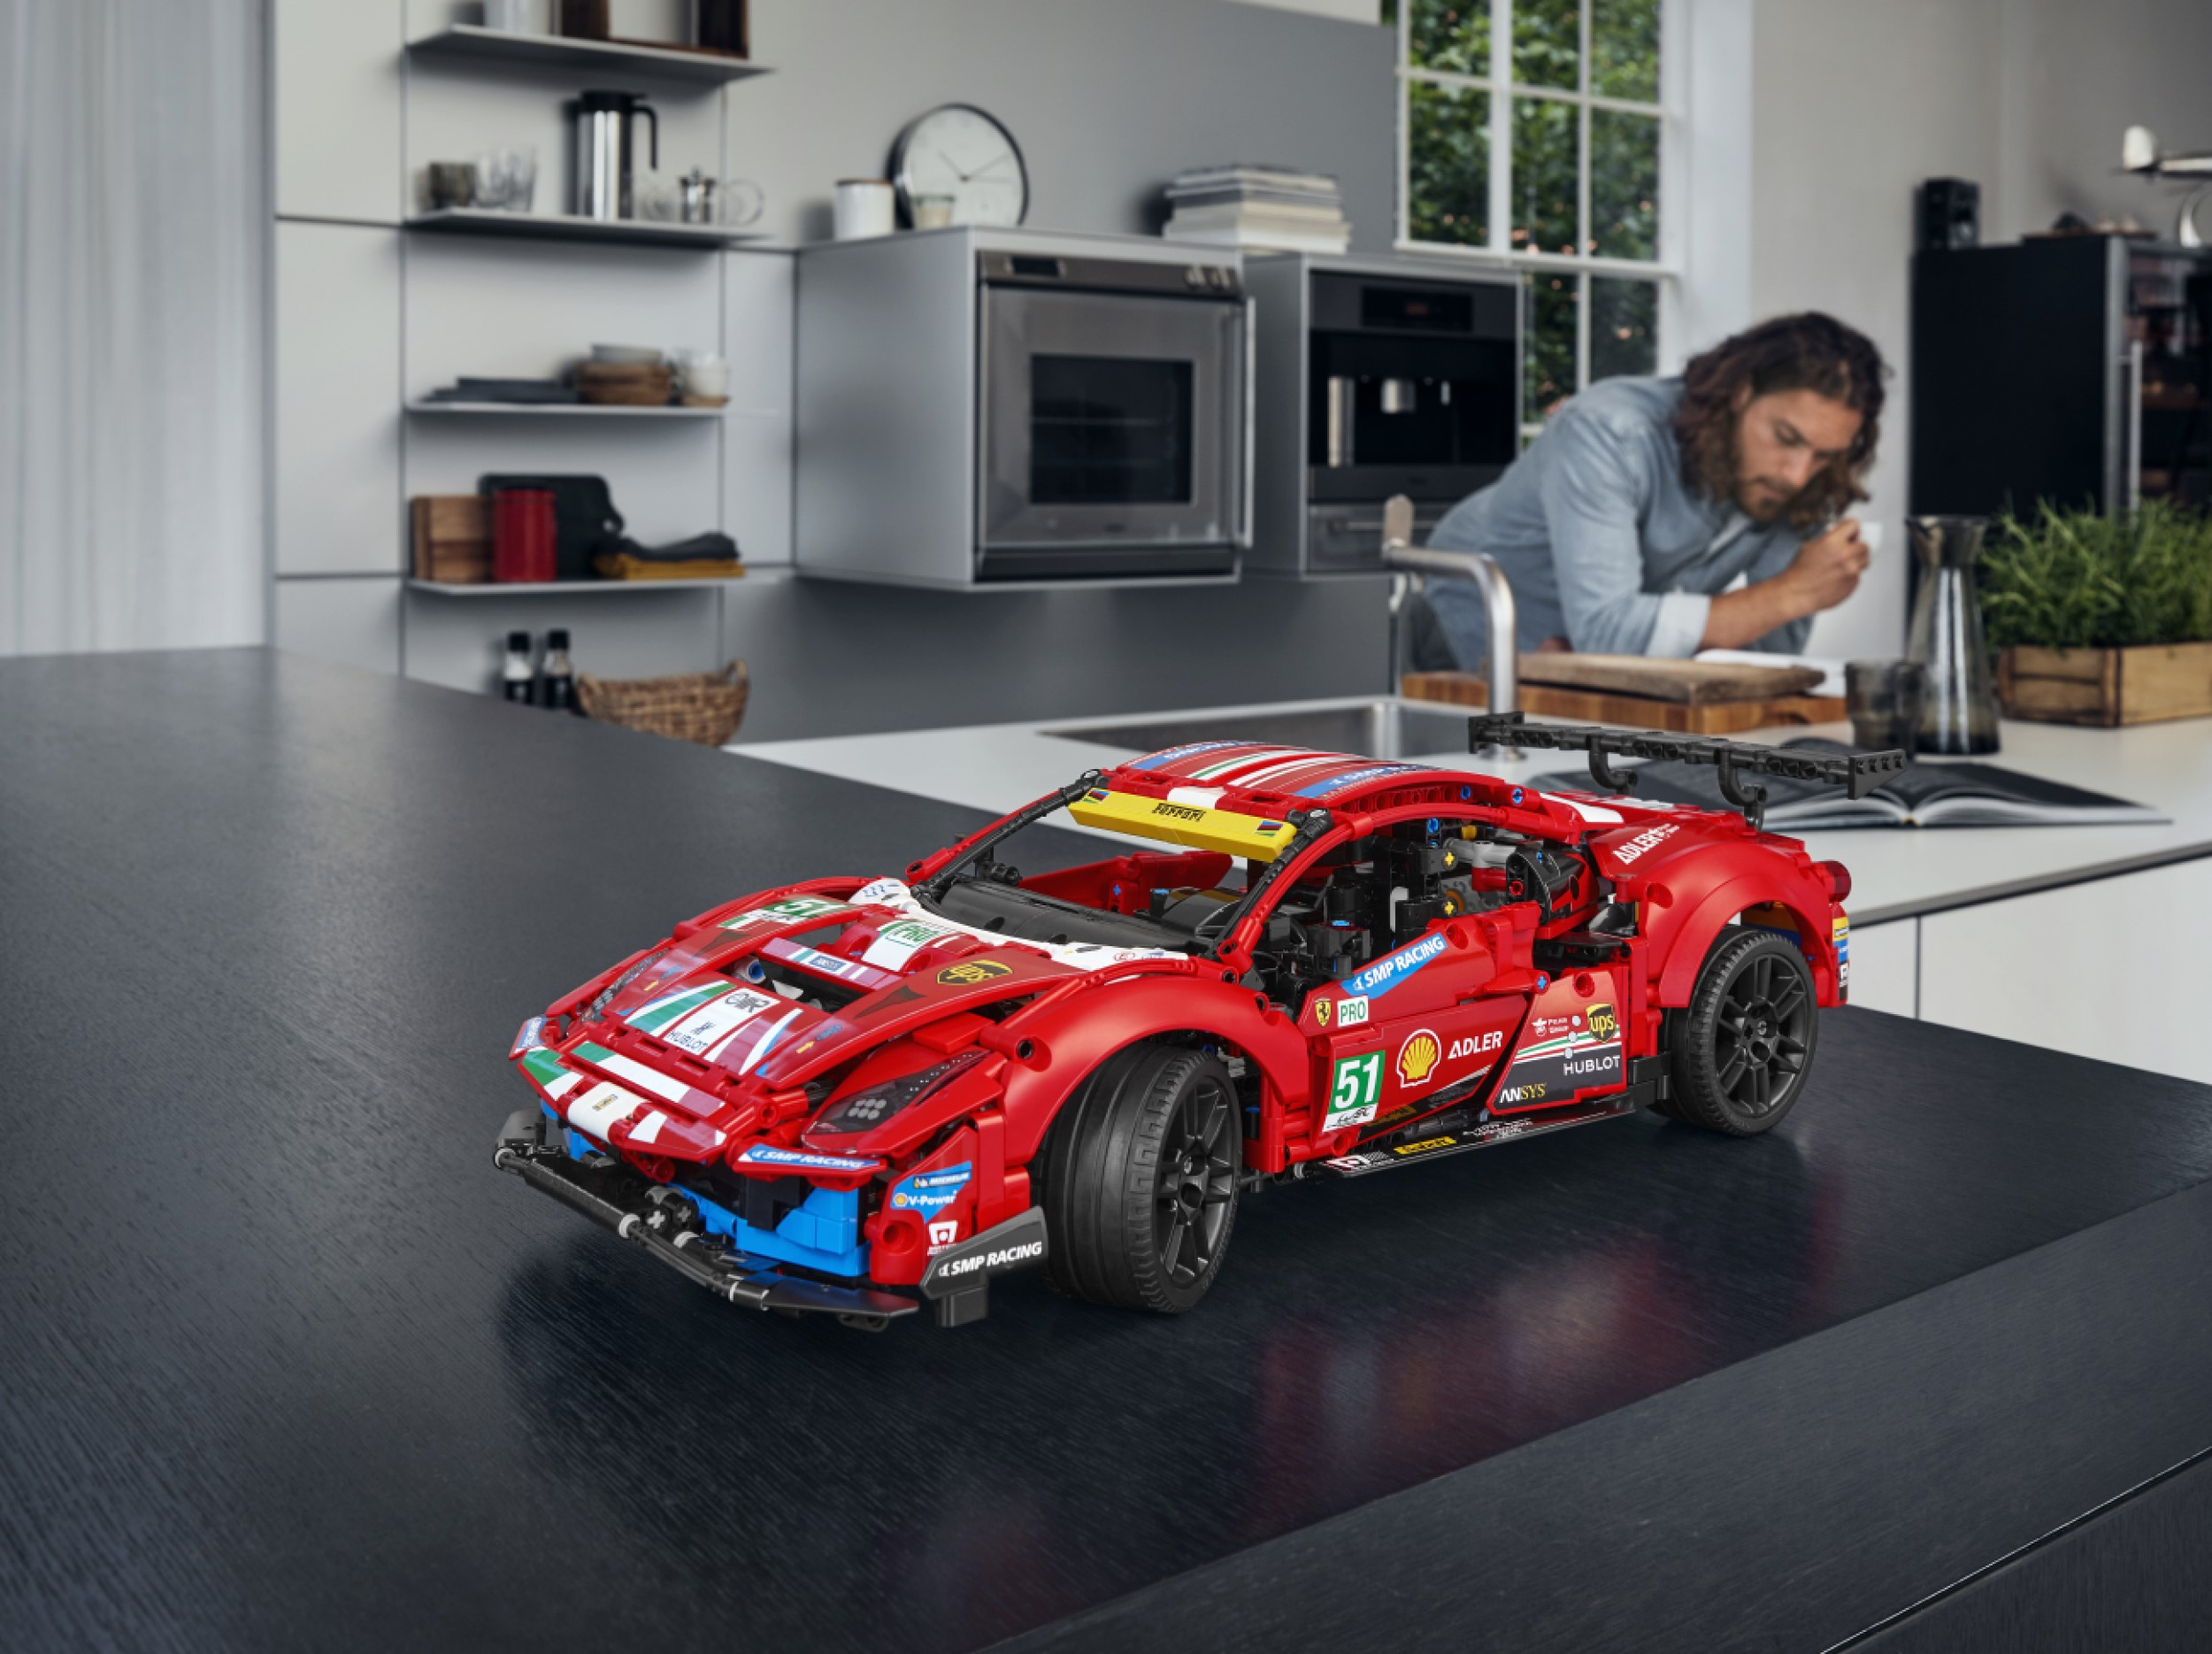 The Ferrari 488 GTE LEGO replica captures the ferocious look of the original 21